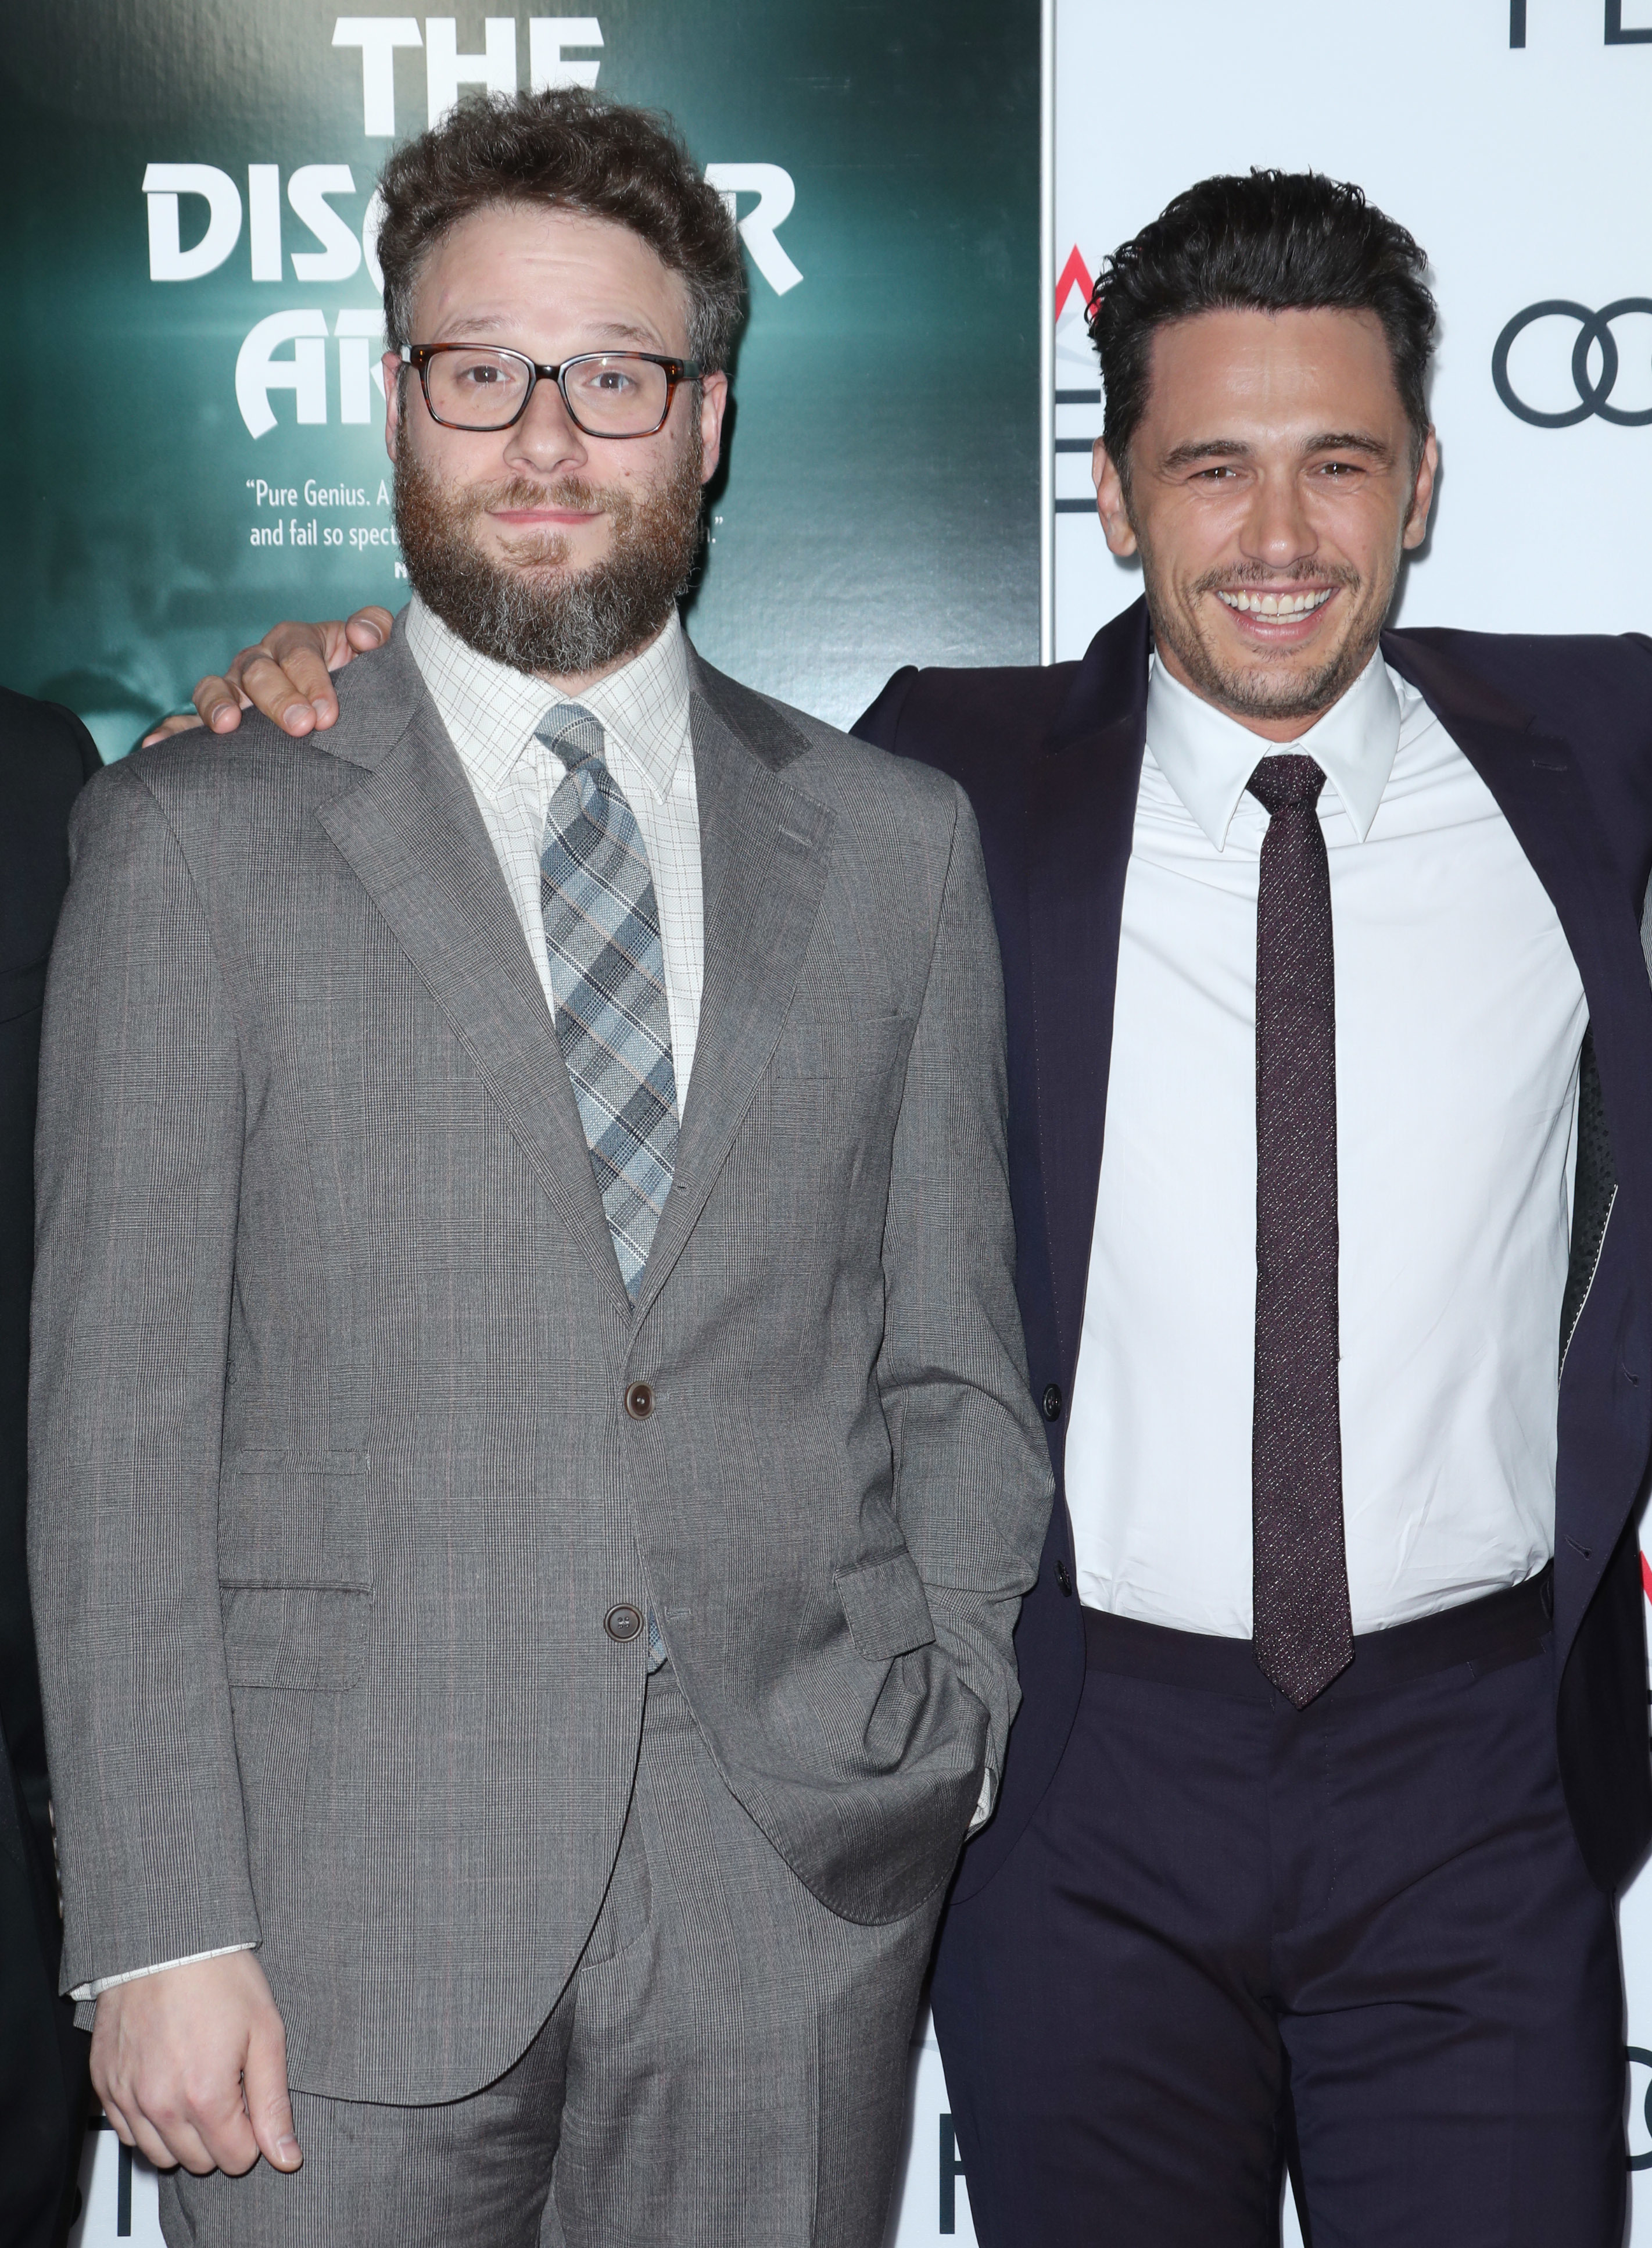 """Seth Rogen and James Franco arrive at """"The Disaster Artist"""" Centerpiece Gala at the AFI Fest in Los Angeles on Nov. 12, 2017."""